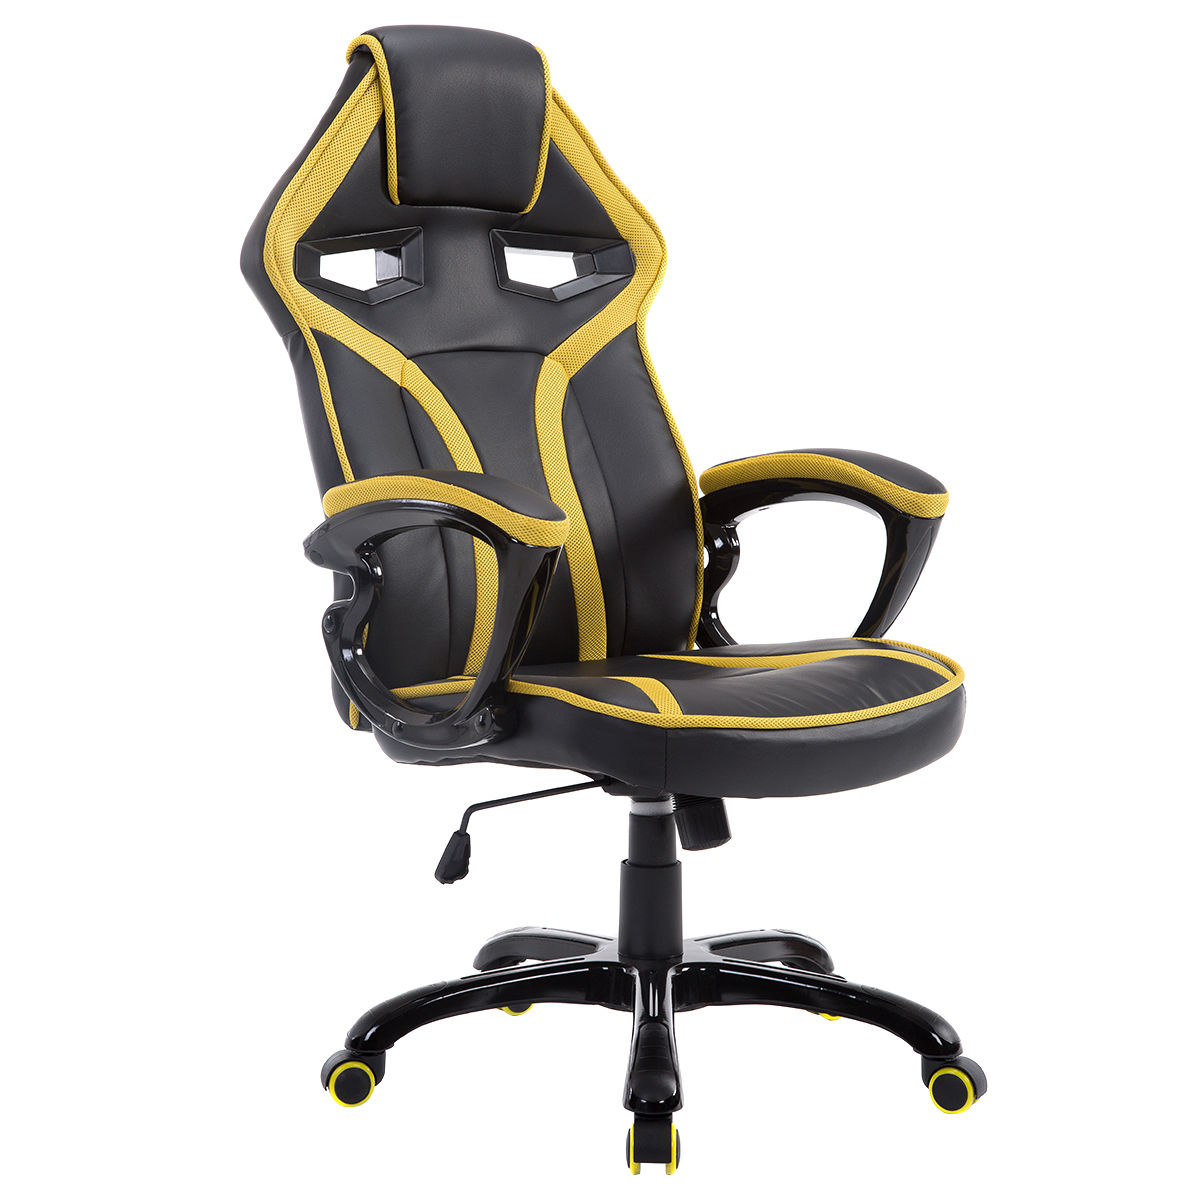 Costway Race Car Style Bucket Seat Office Chair High Back Racing Gaming Chair Desk Task